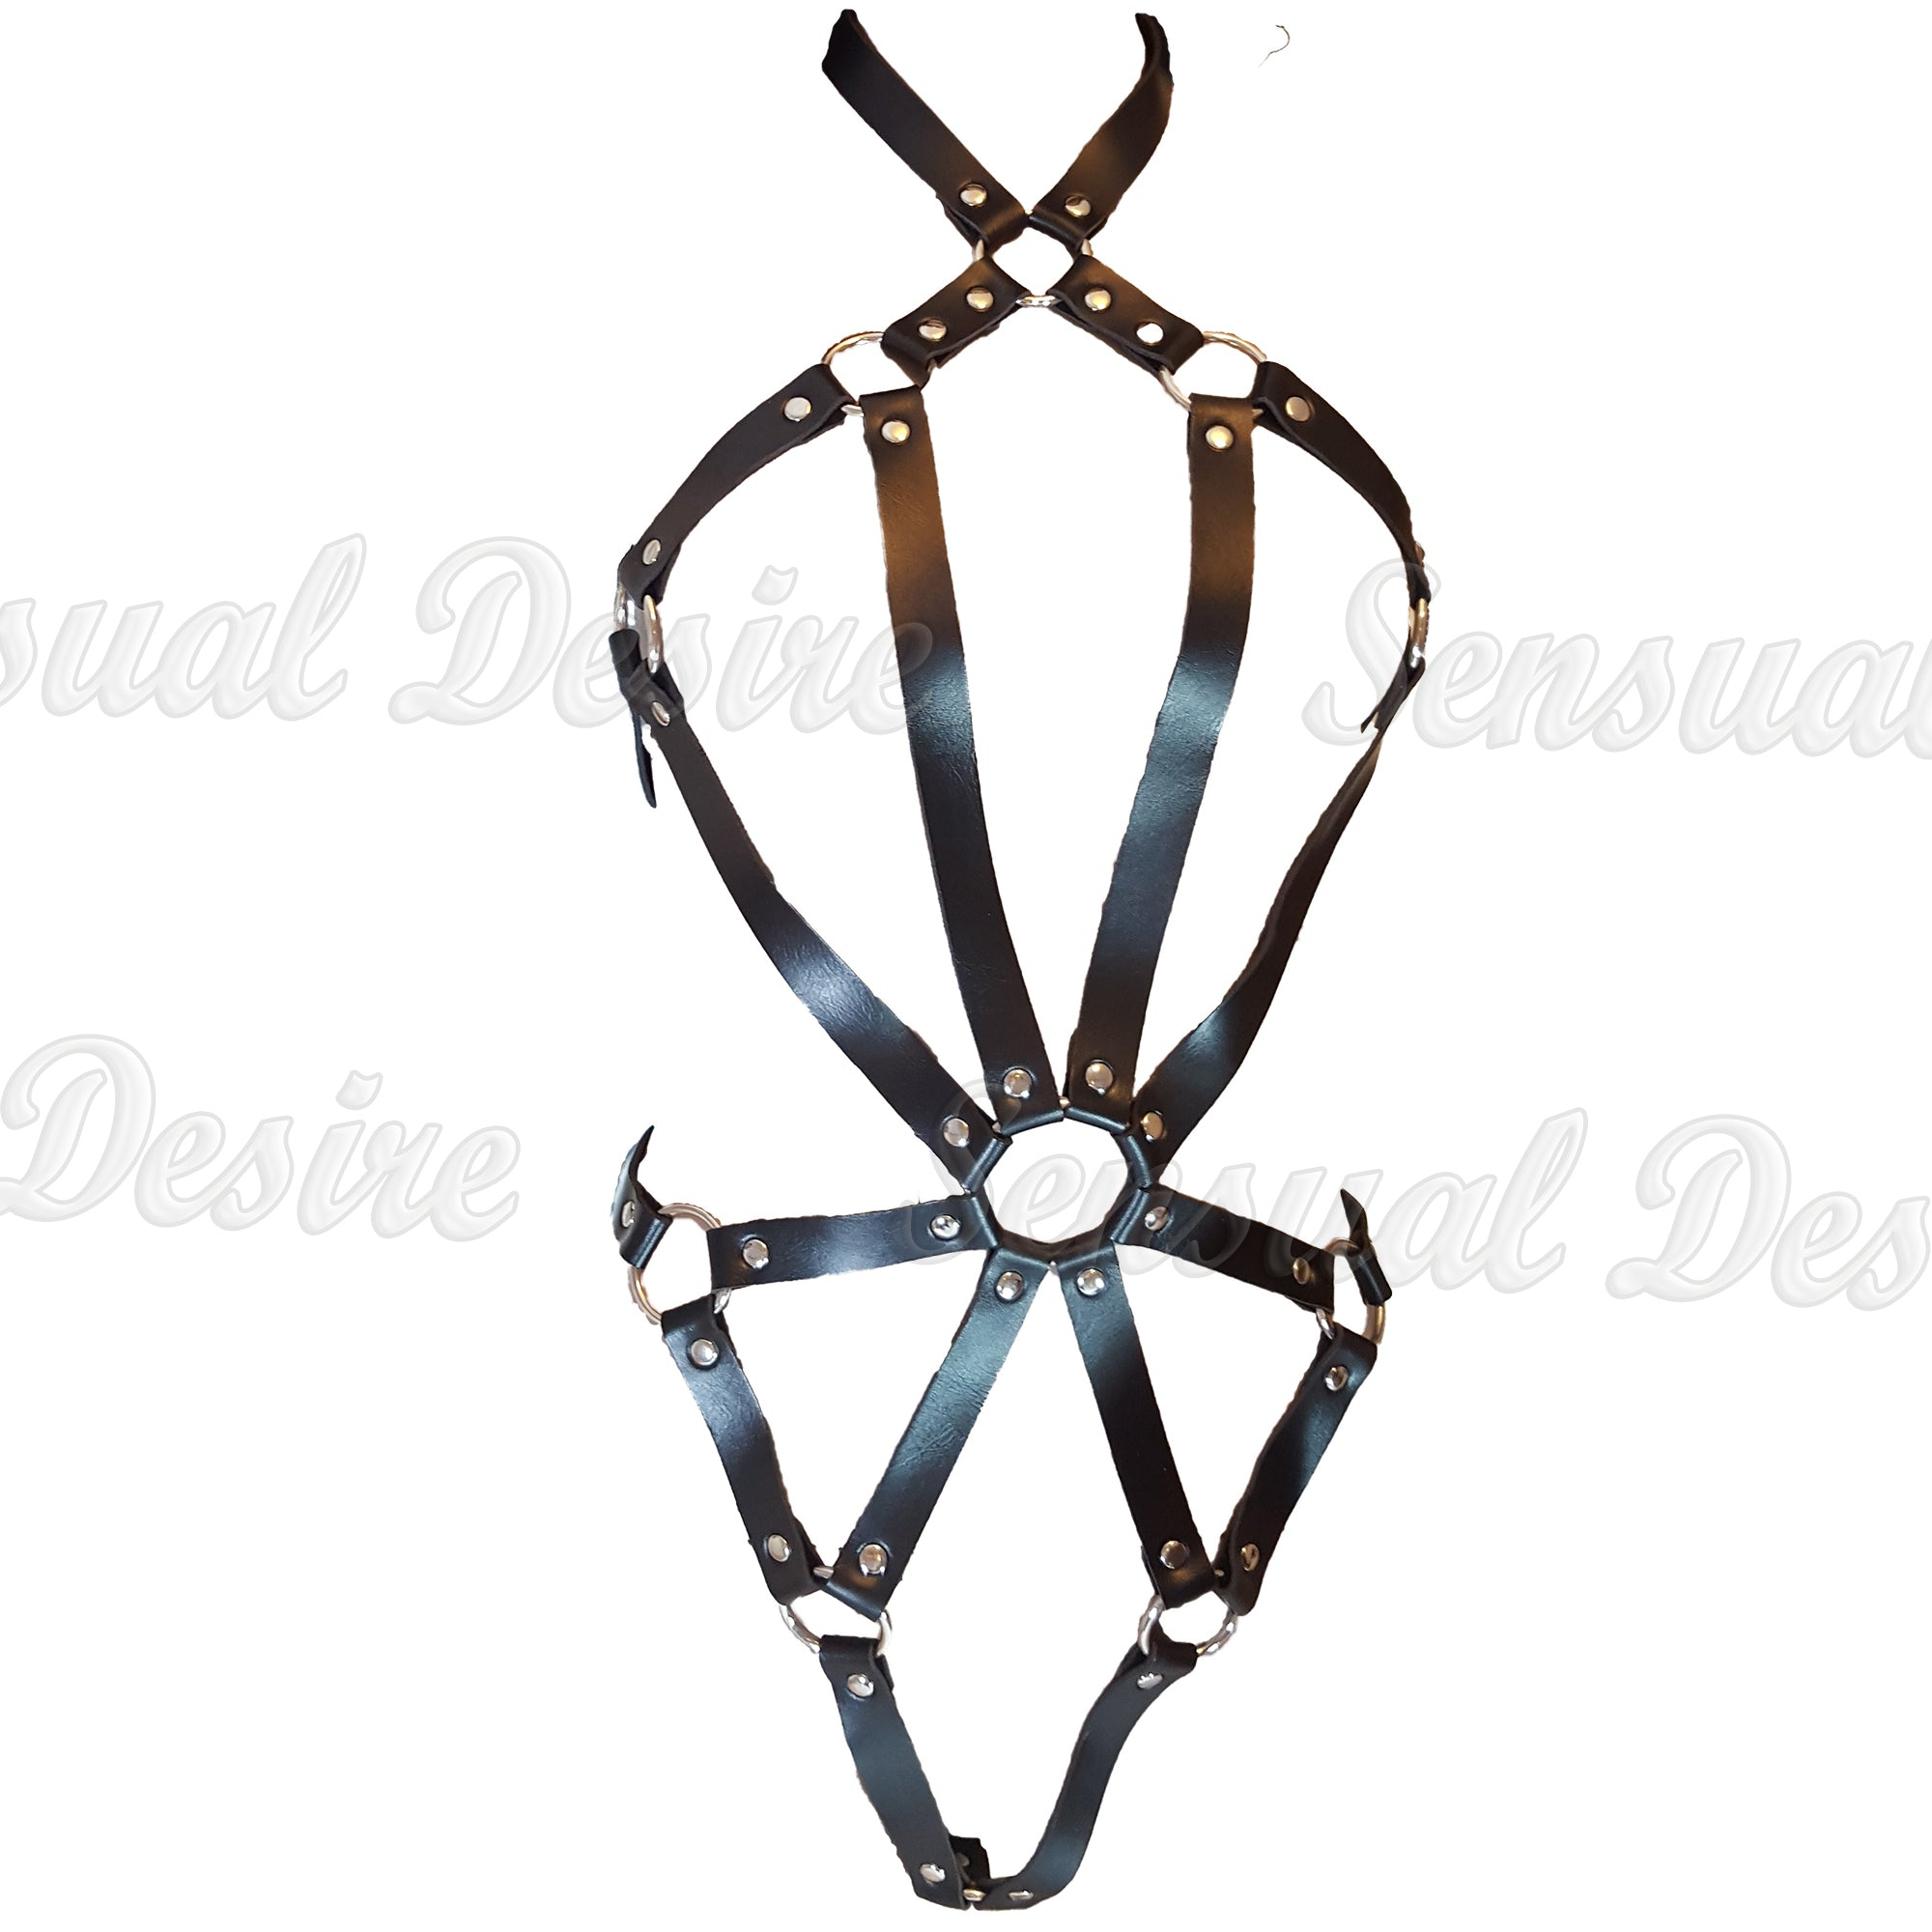 Ladies bondage body harness restraints from sensual desire your bdsm